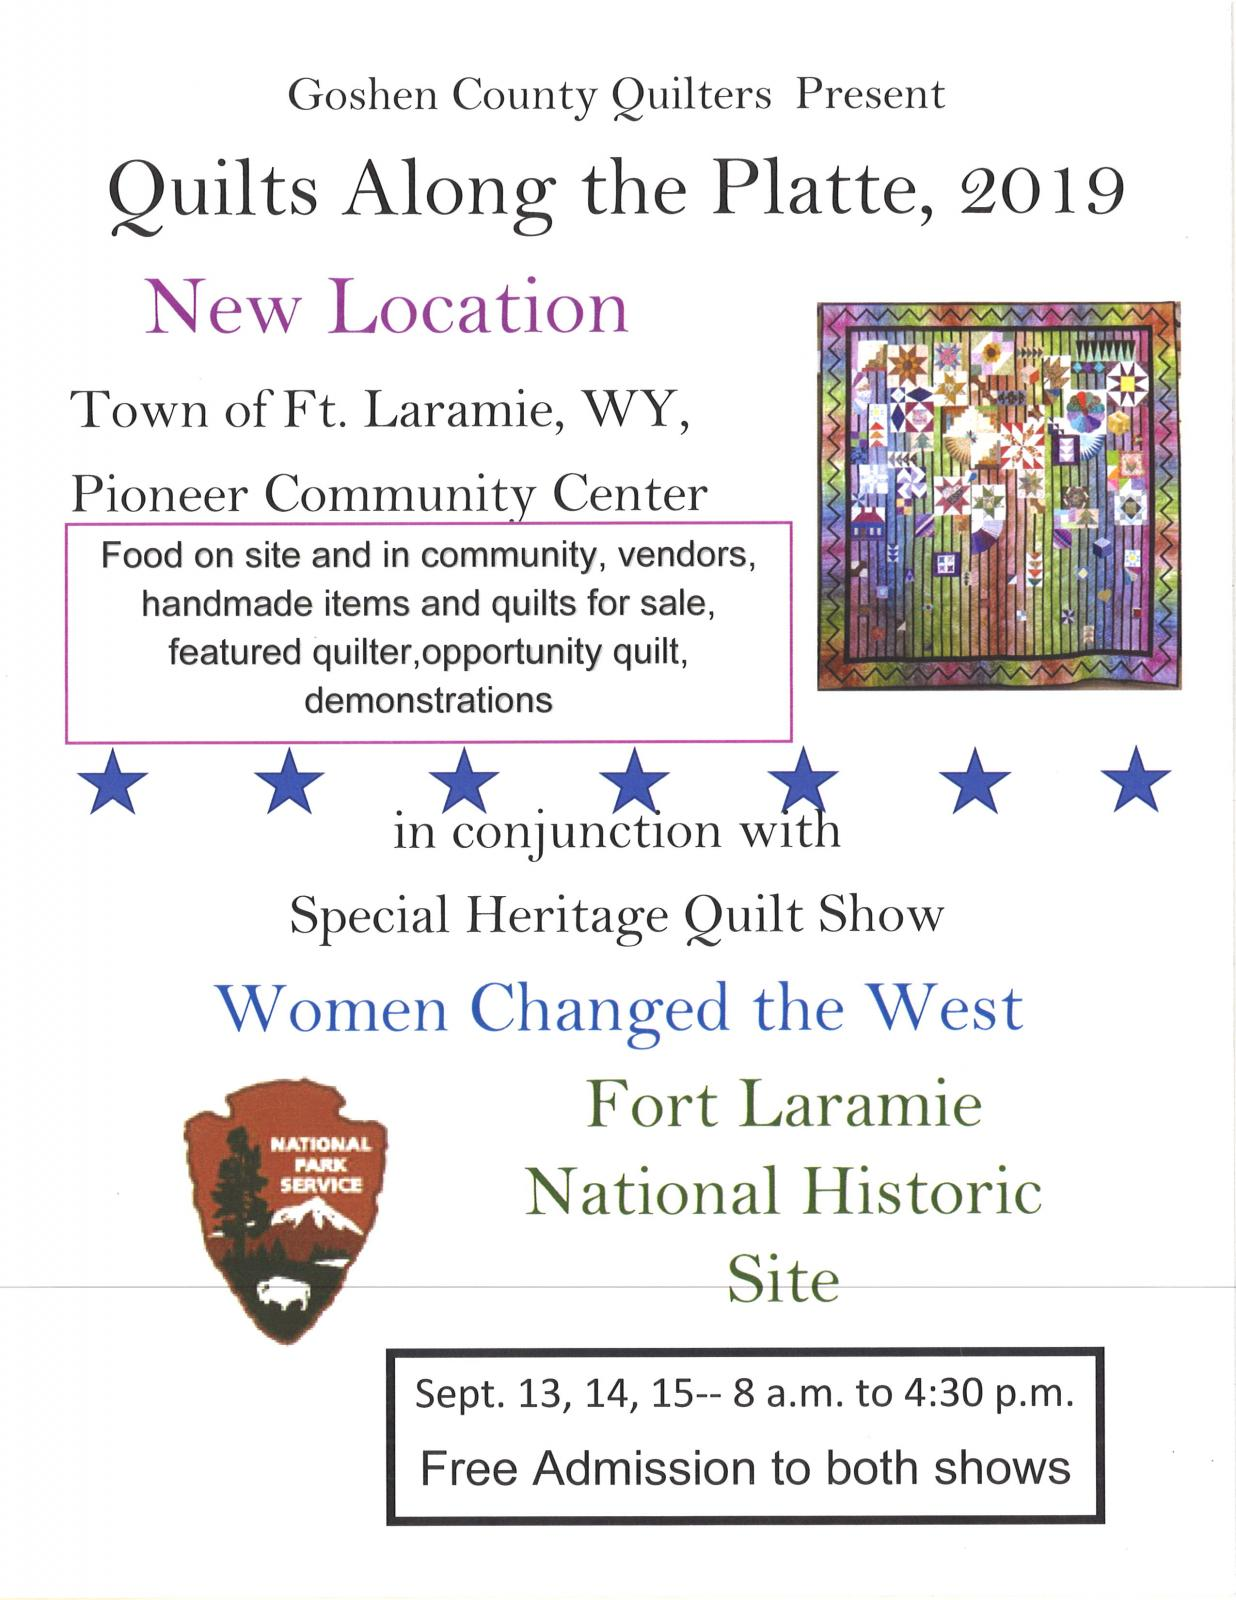 Event Promo Photo For Quilts Along the Platte, 2019